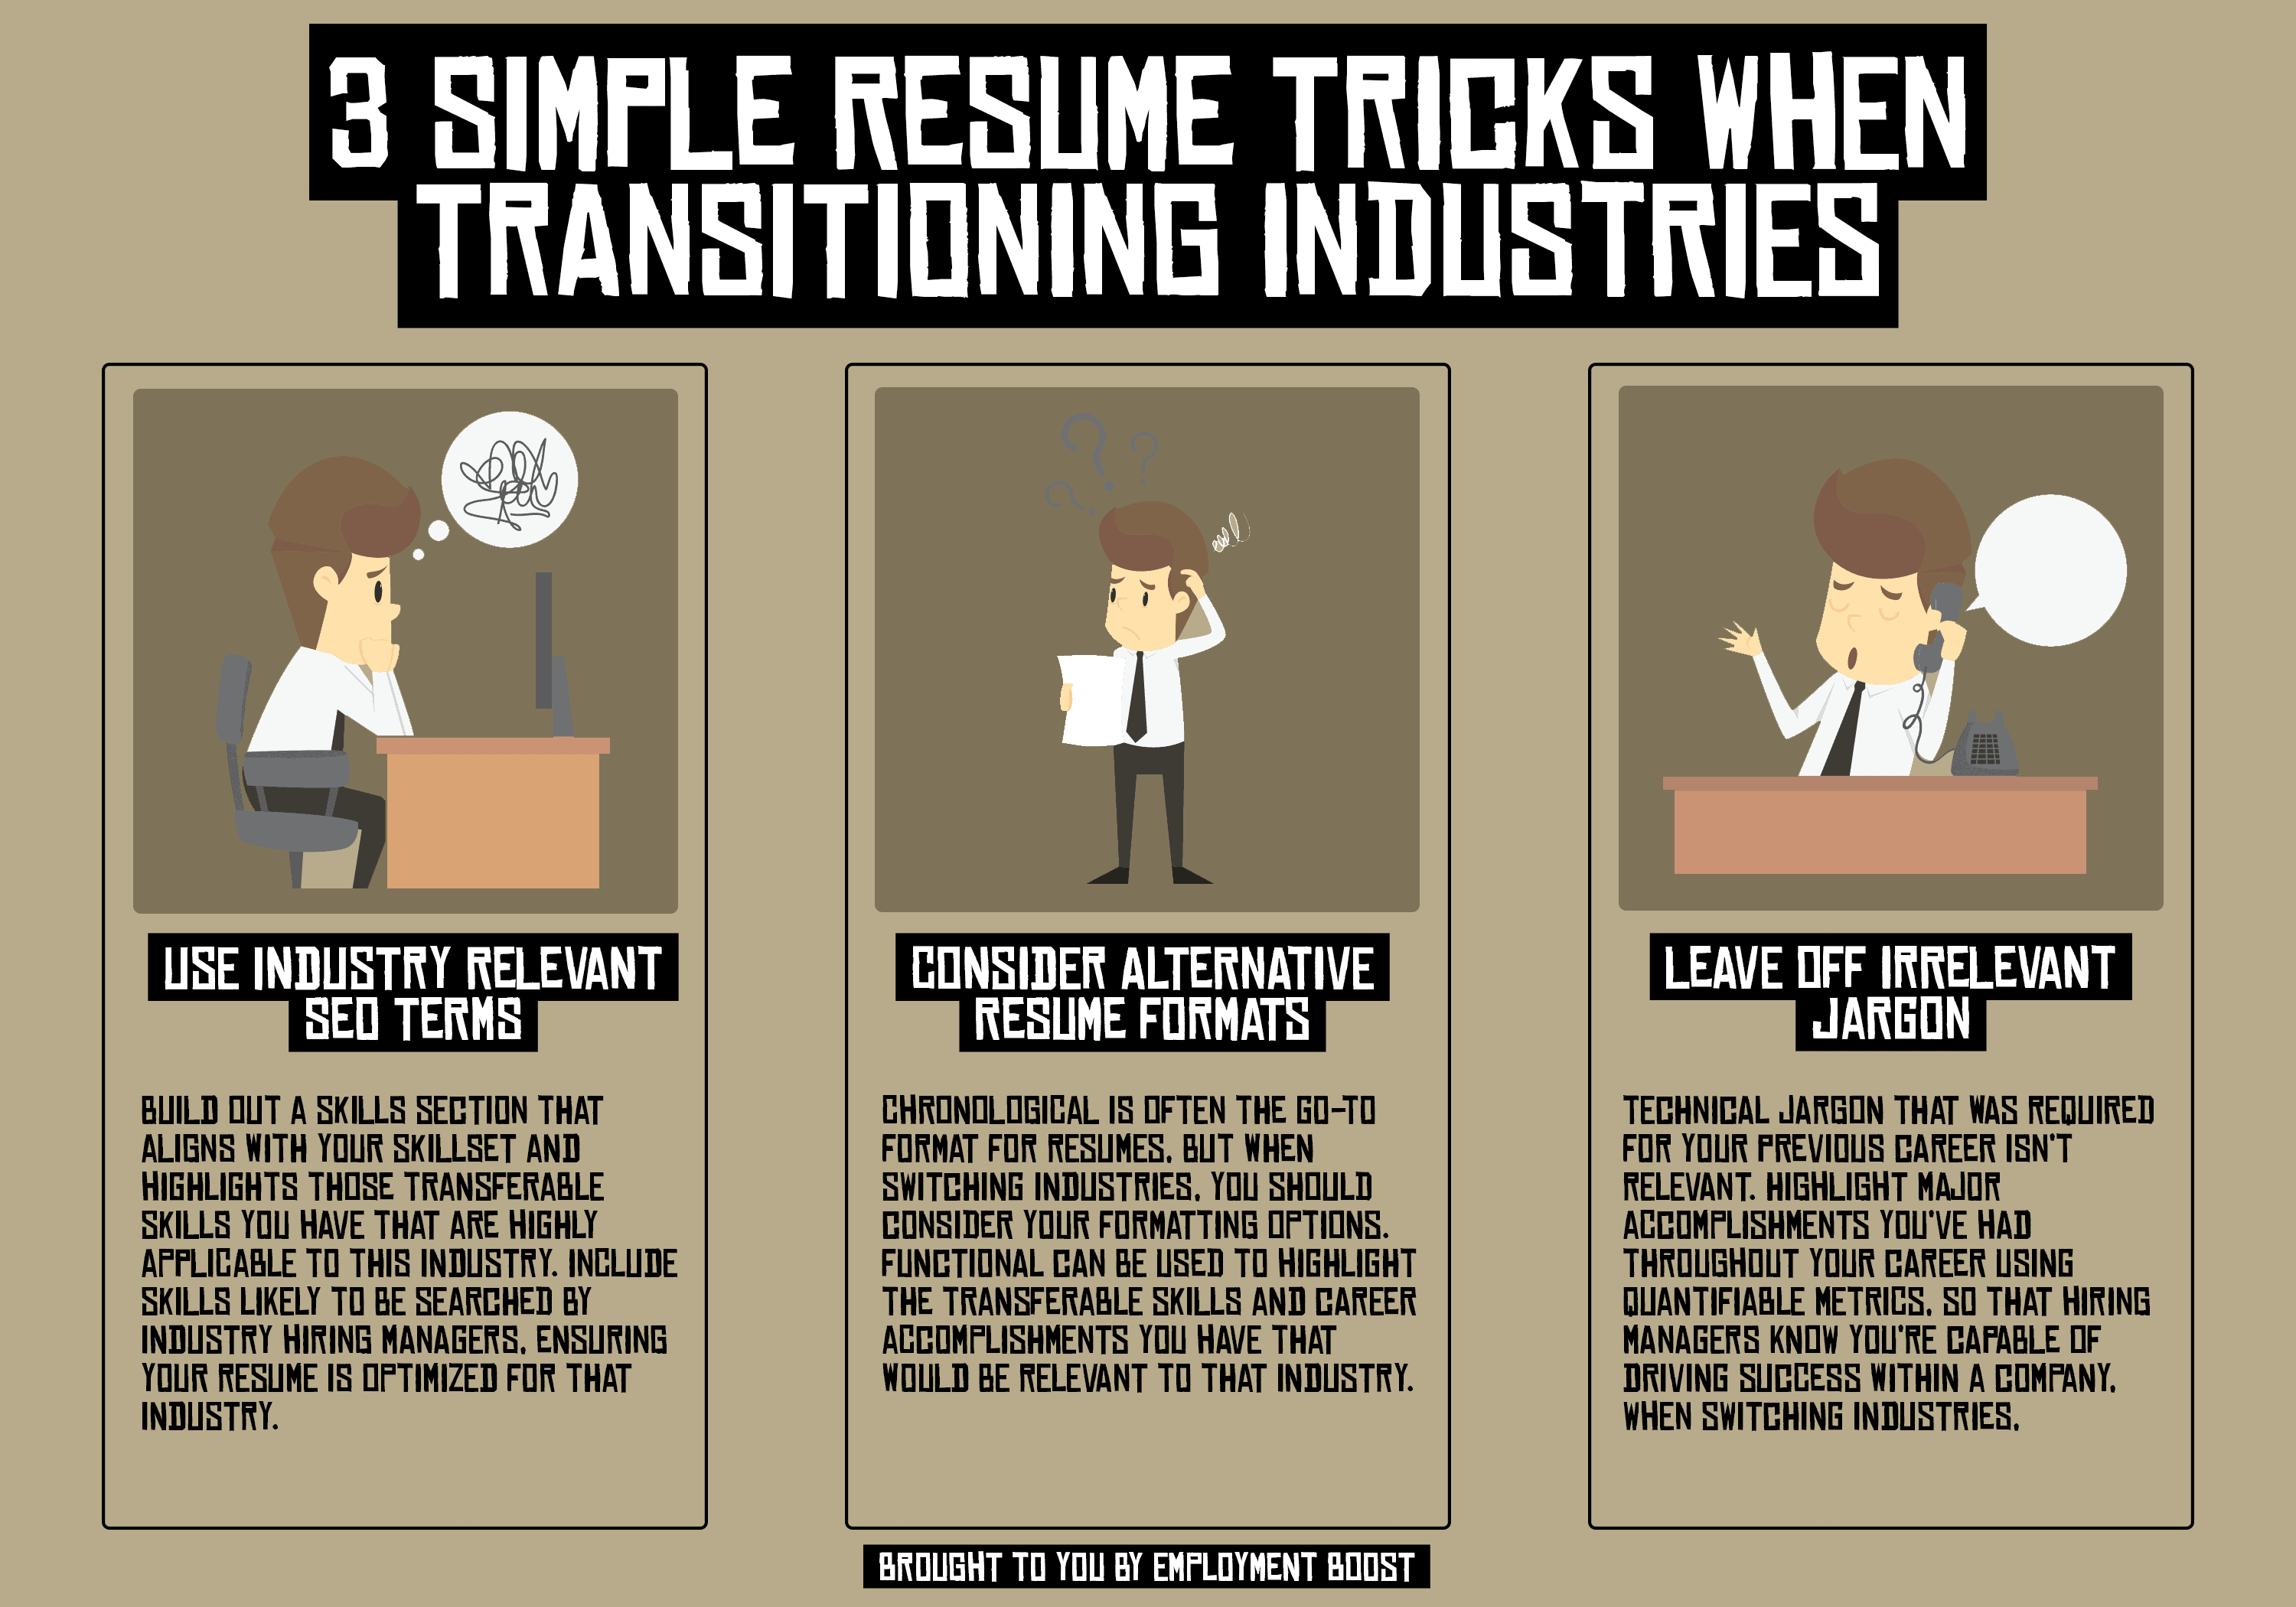 3 resume tips for transitioning industries